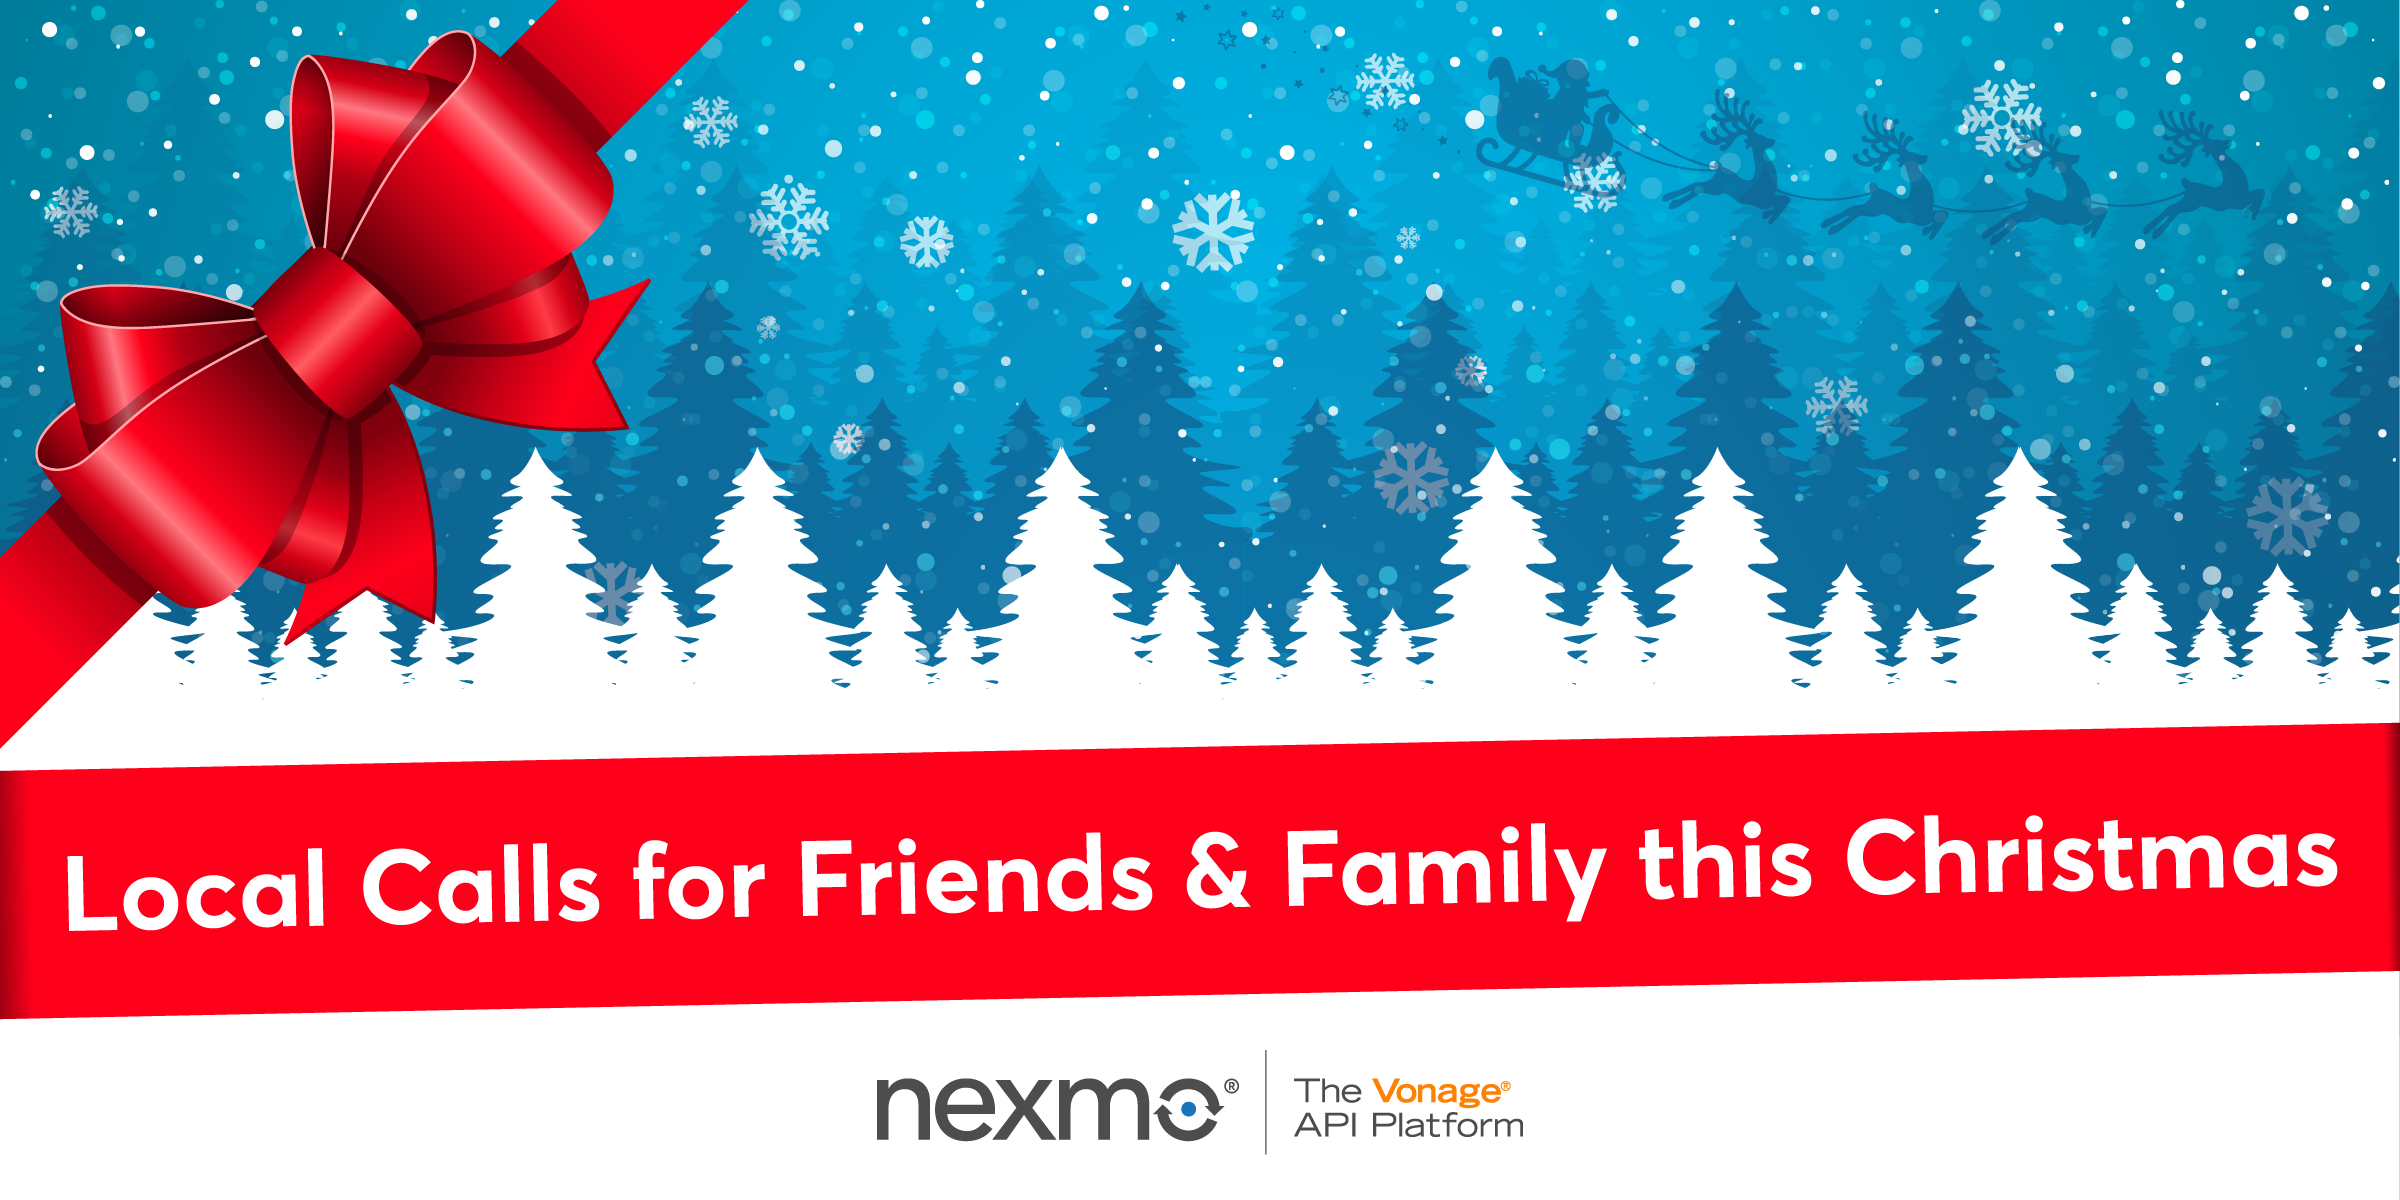 Local Calls for Friends and Family this Christmas with Nexmo Virtual Numbers and Call Forwarding